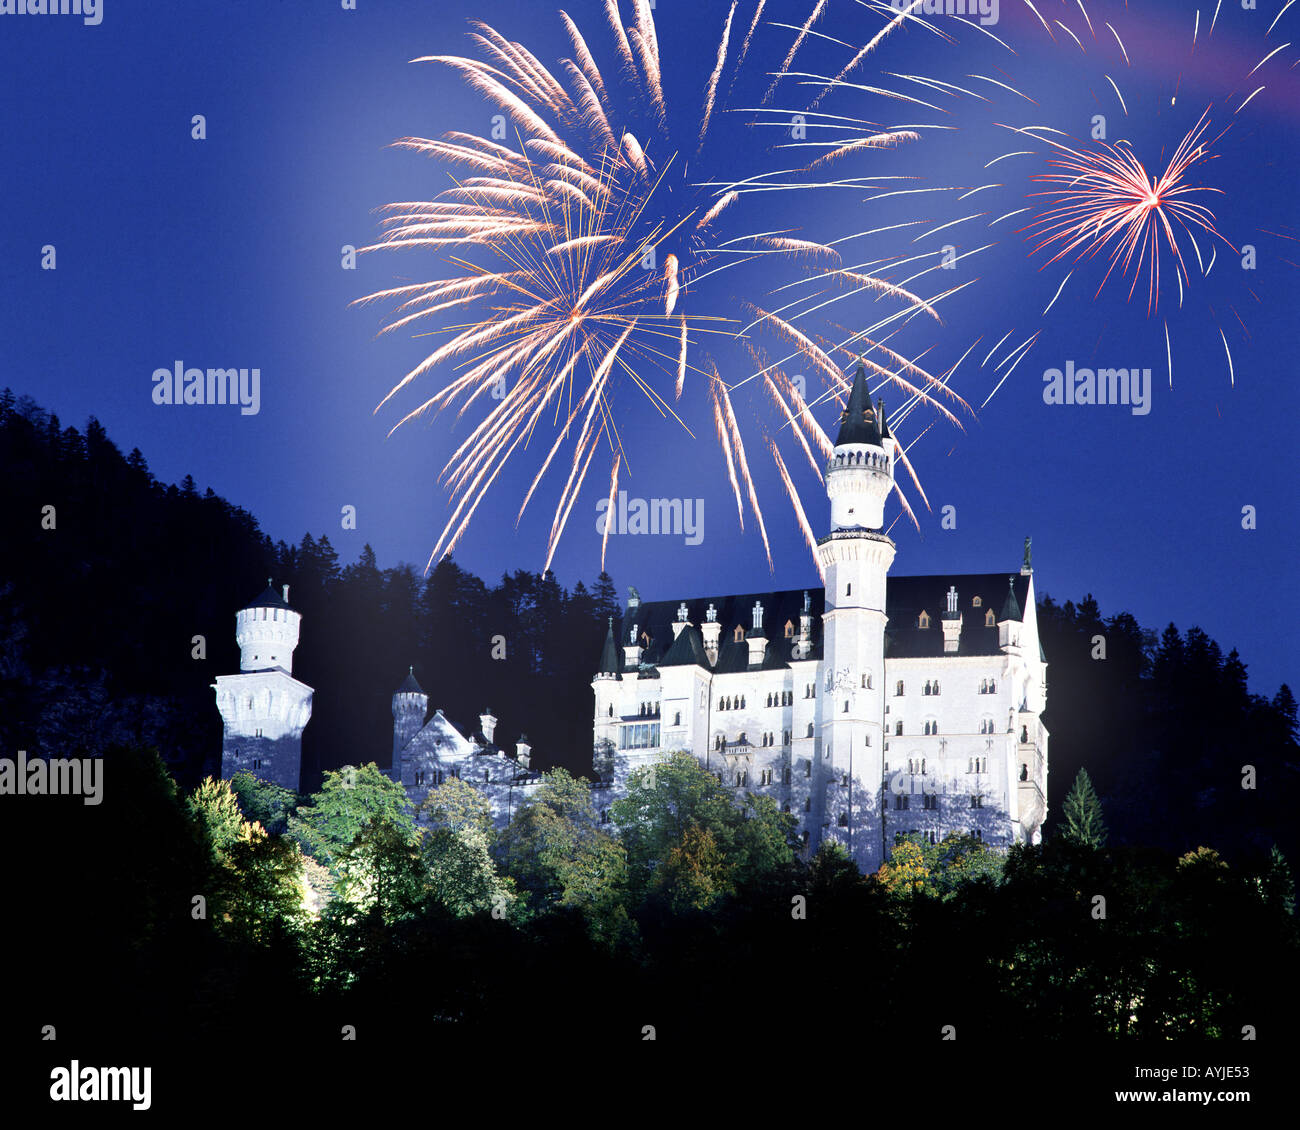 DE - BAVARIA: Fireworks over Neuschwanstein Castle - Stock Image